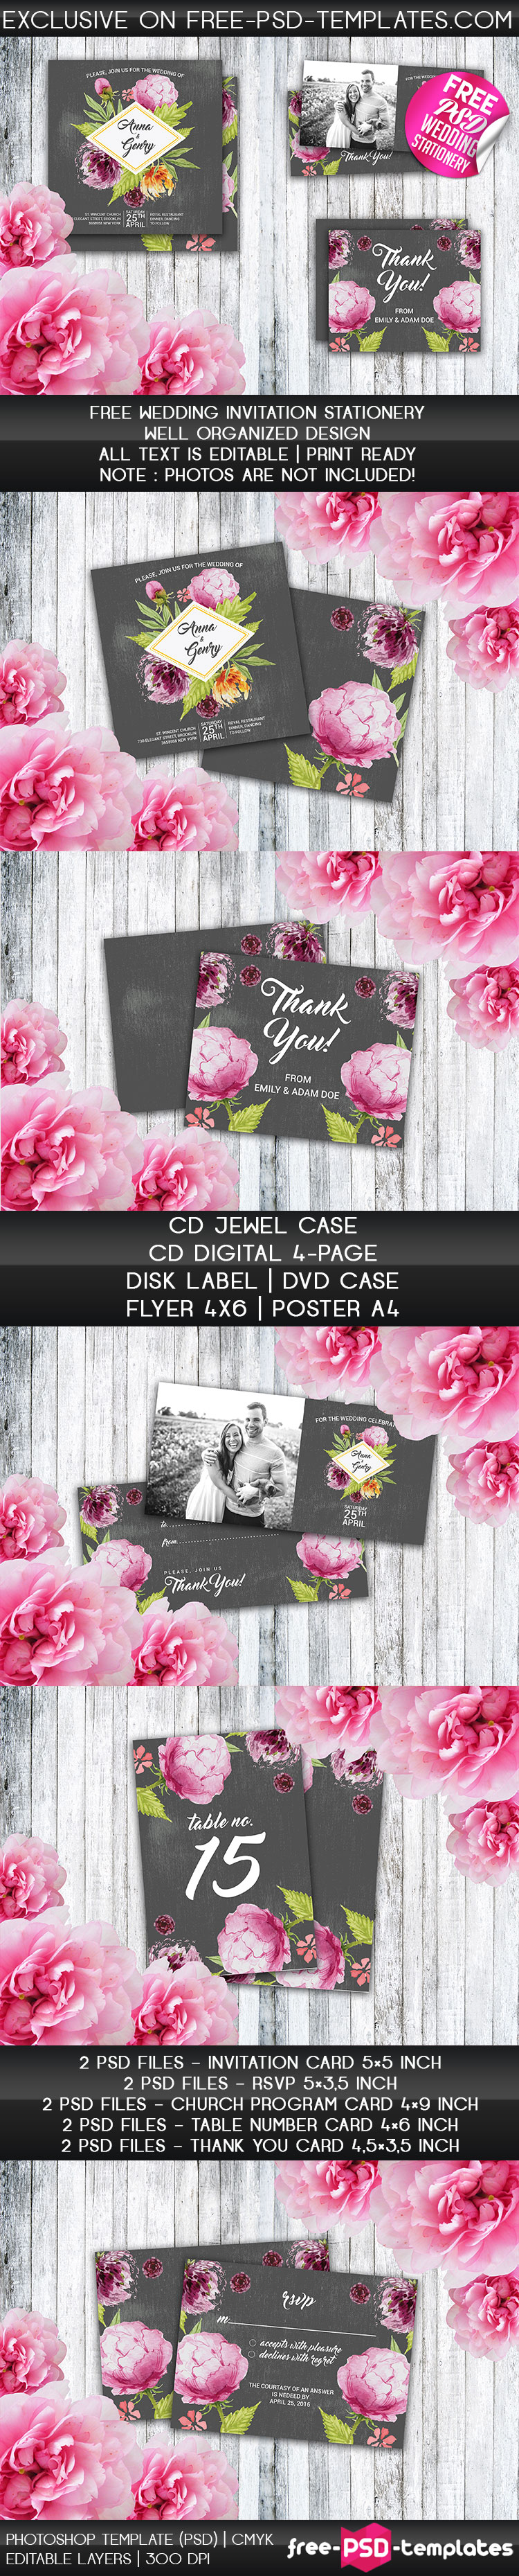 Preview_Free_Wedding_Invitation_Stationery